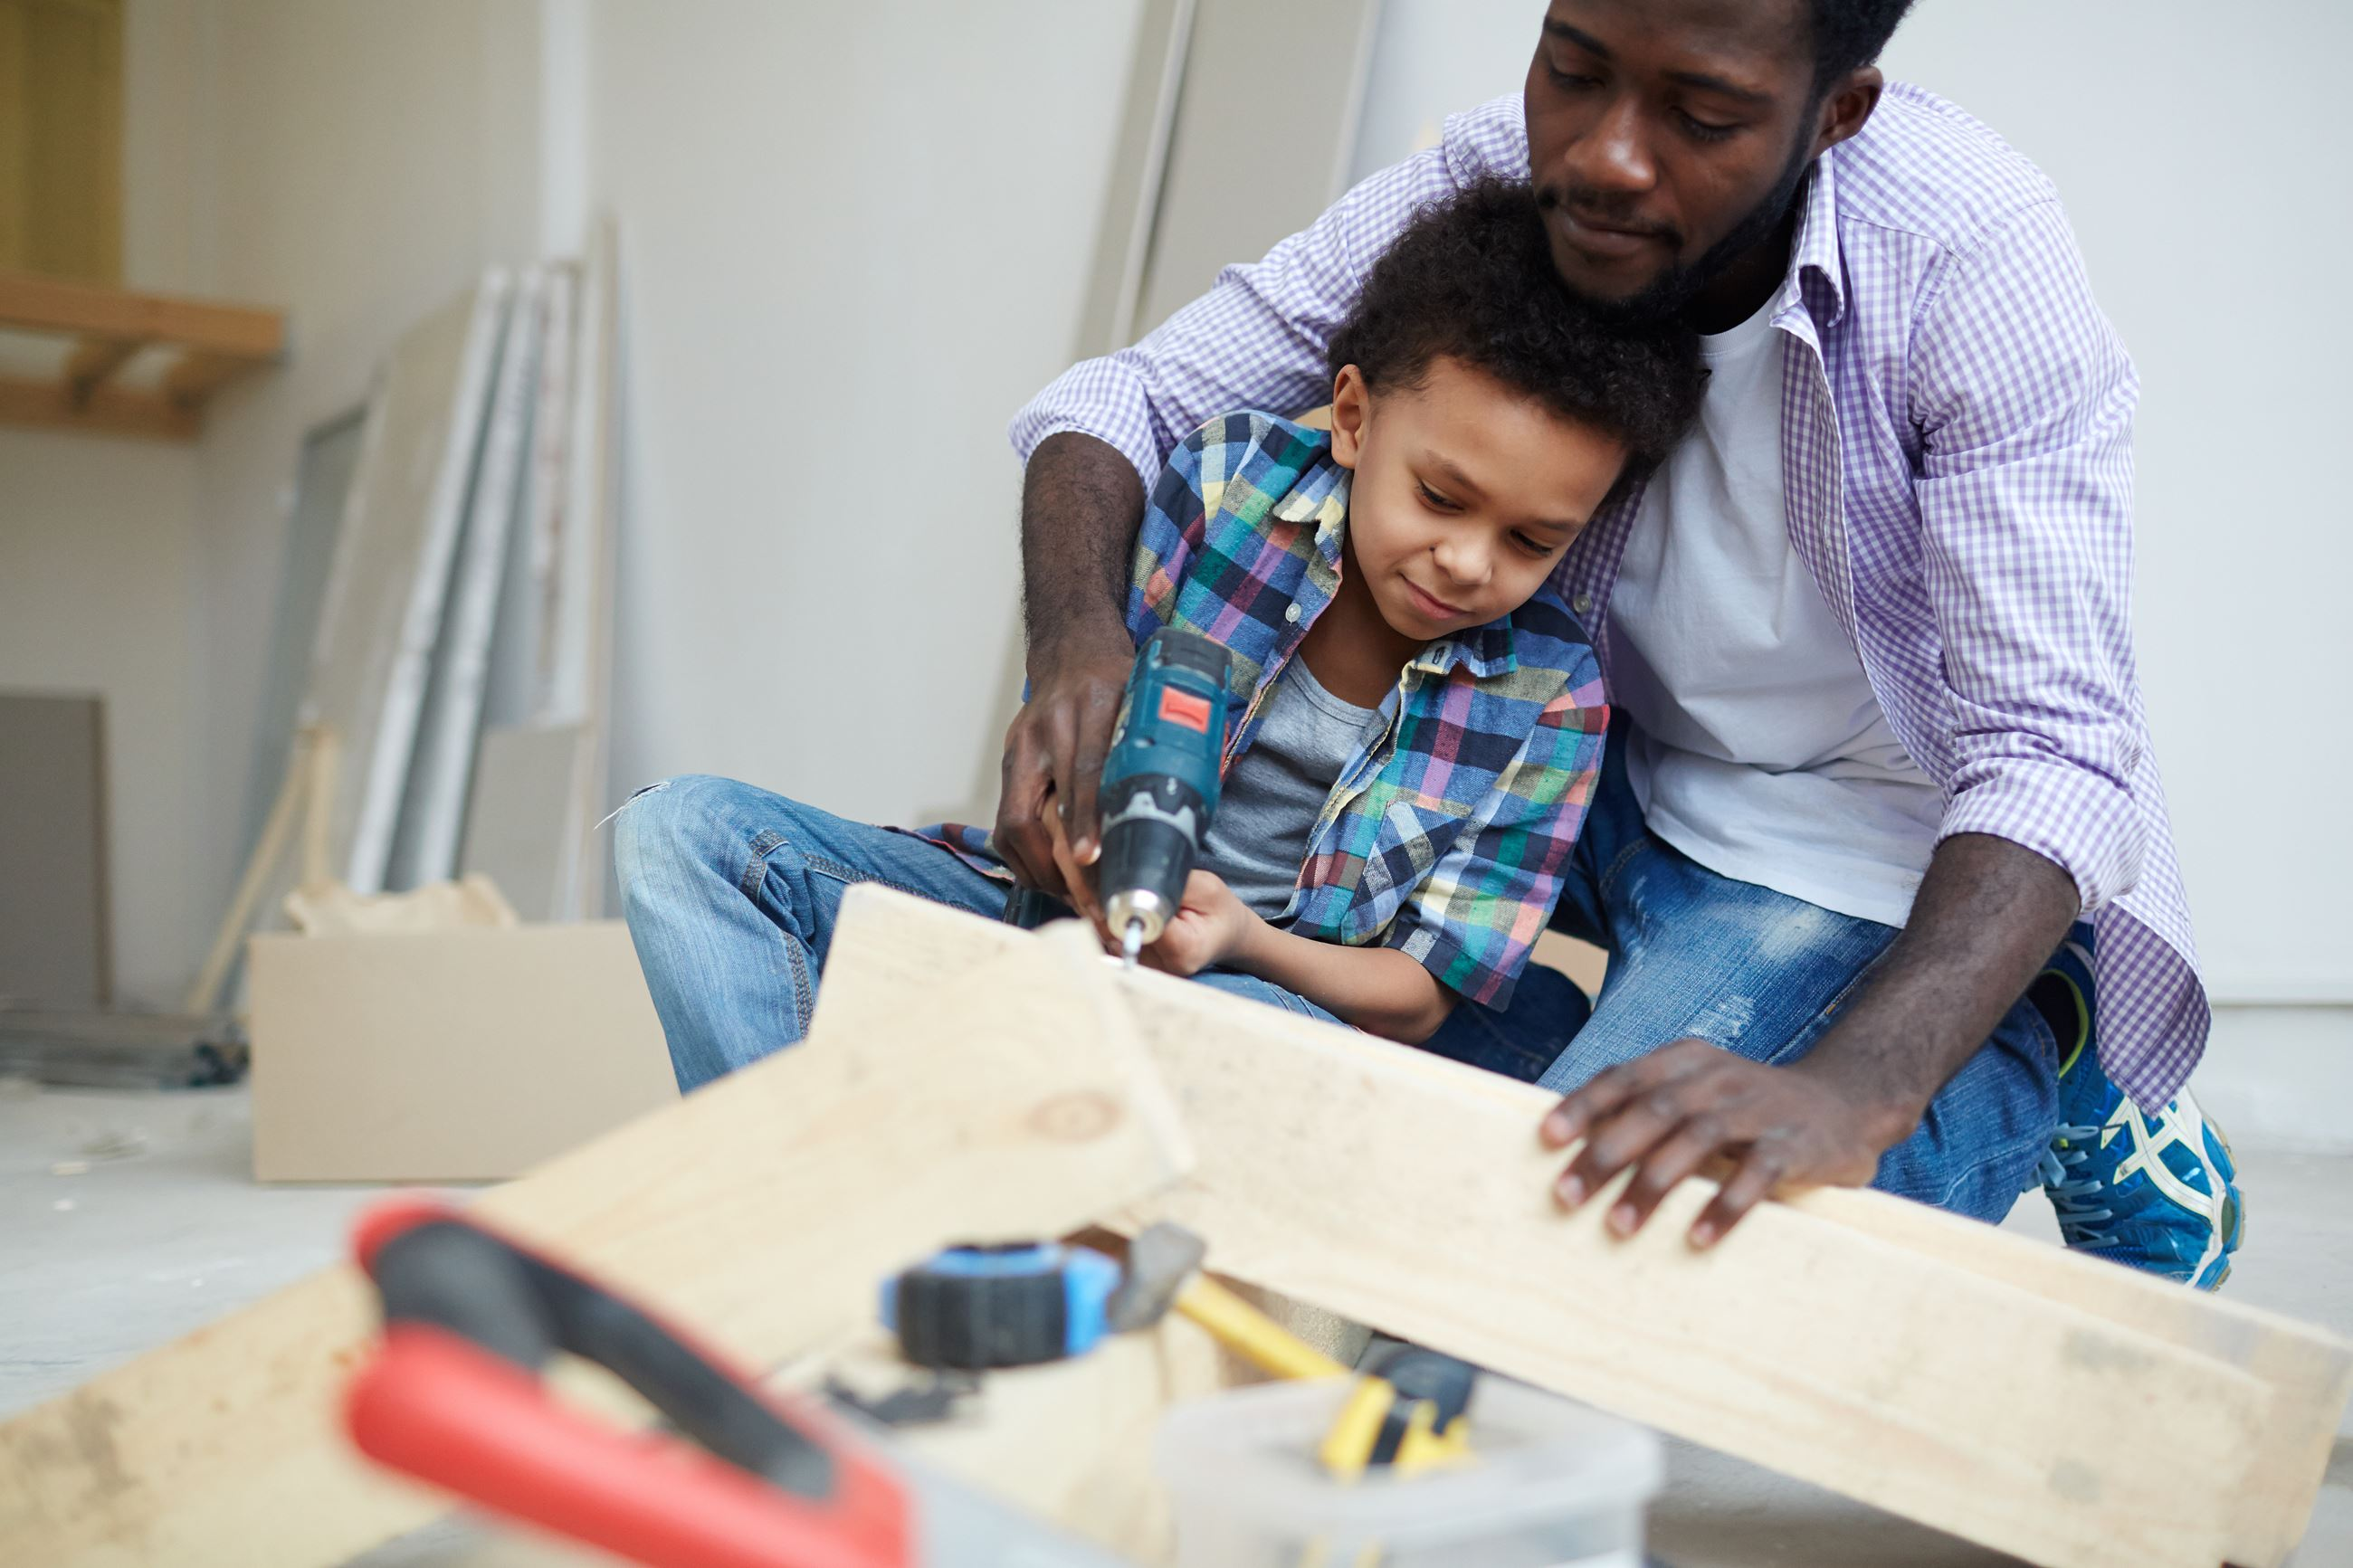 storyblocks-young-man-showing-his-son-how-to-work-with-electric-drill_HUXpoN8w0b